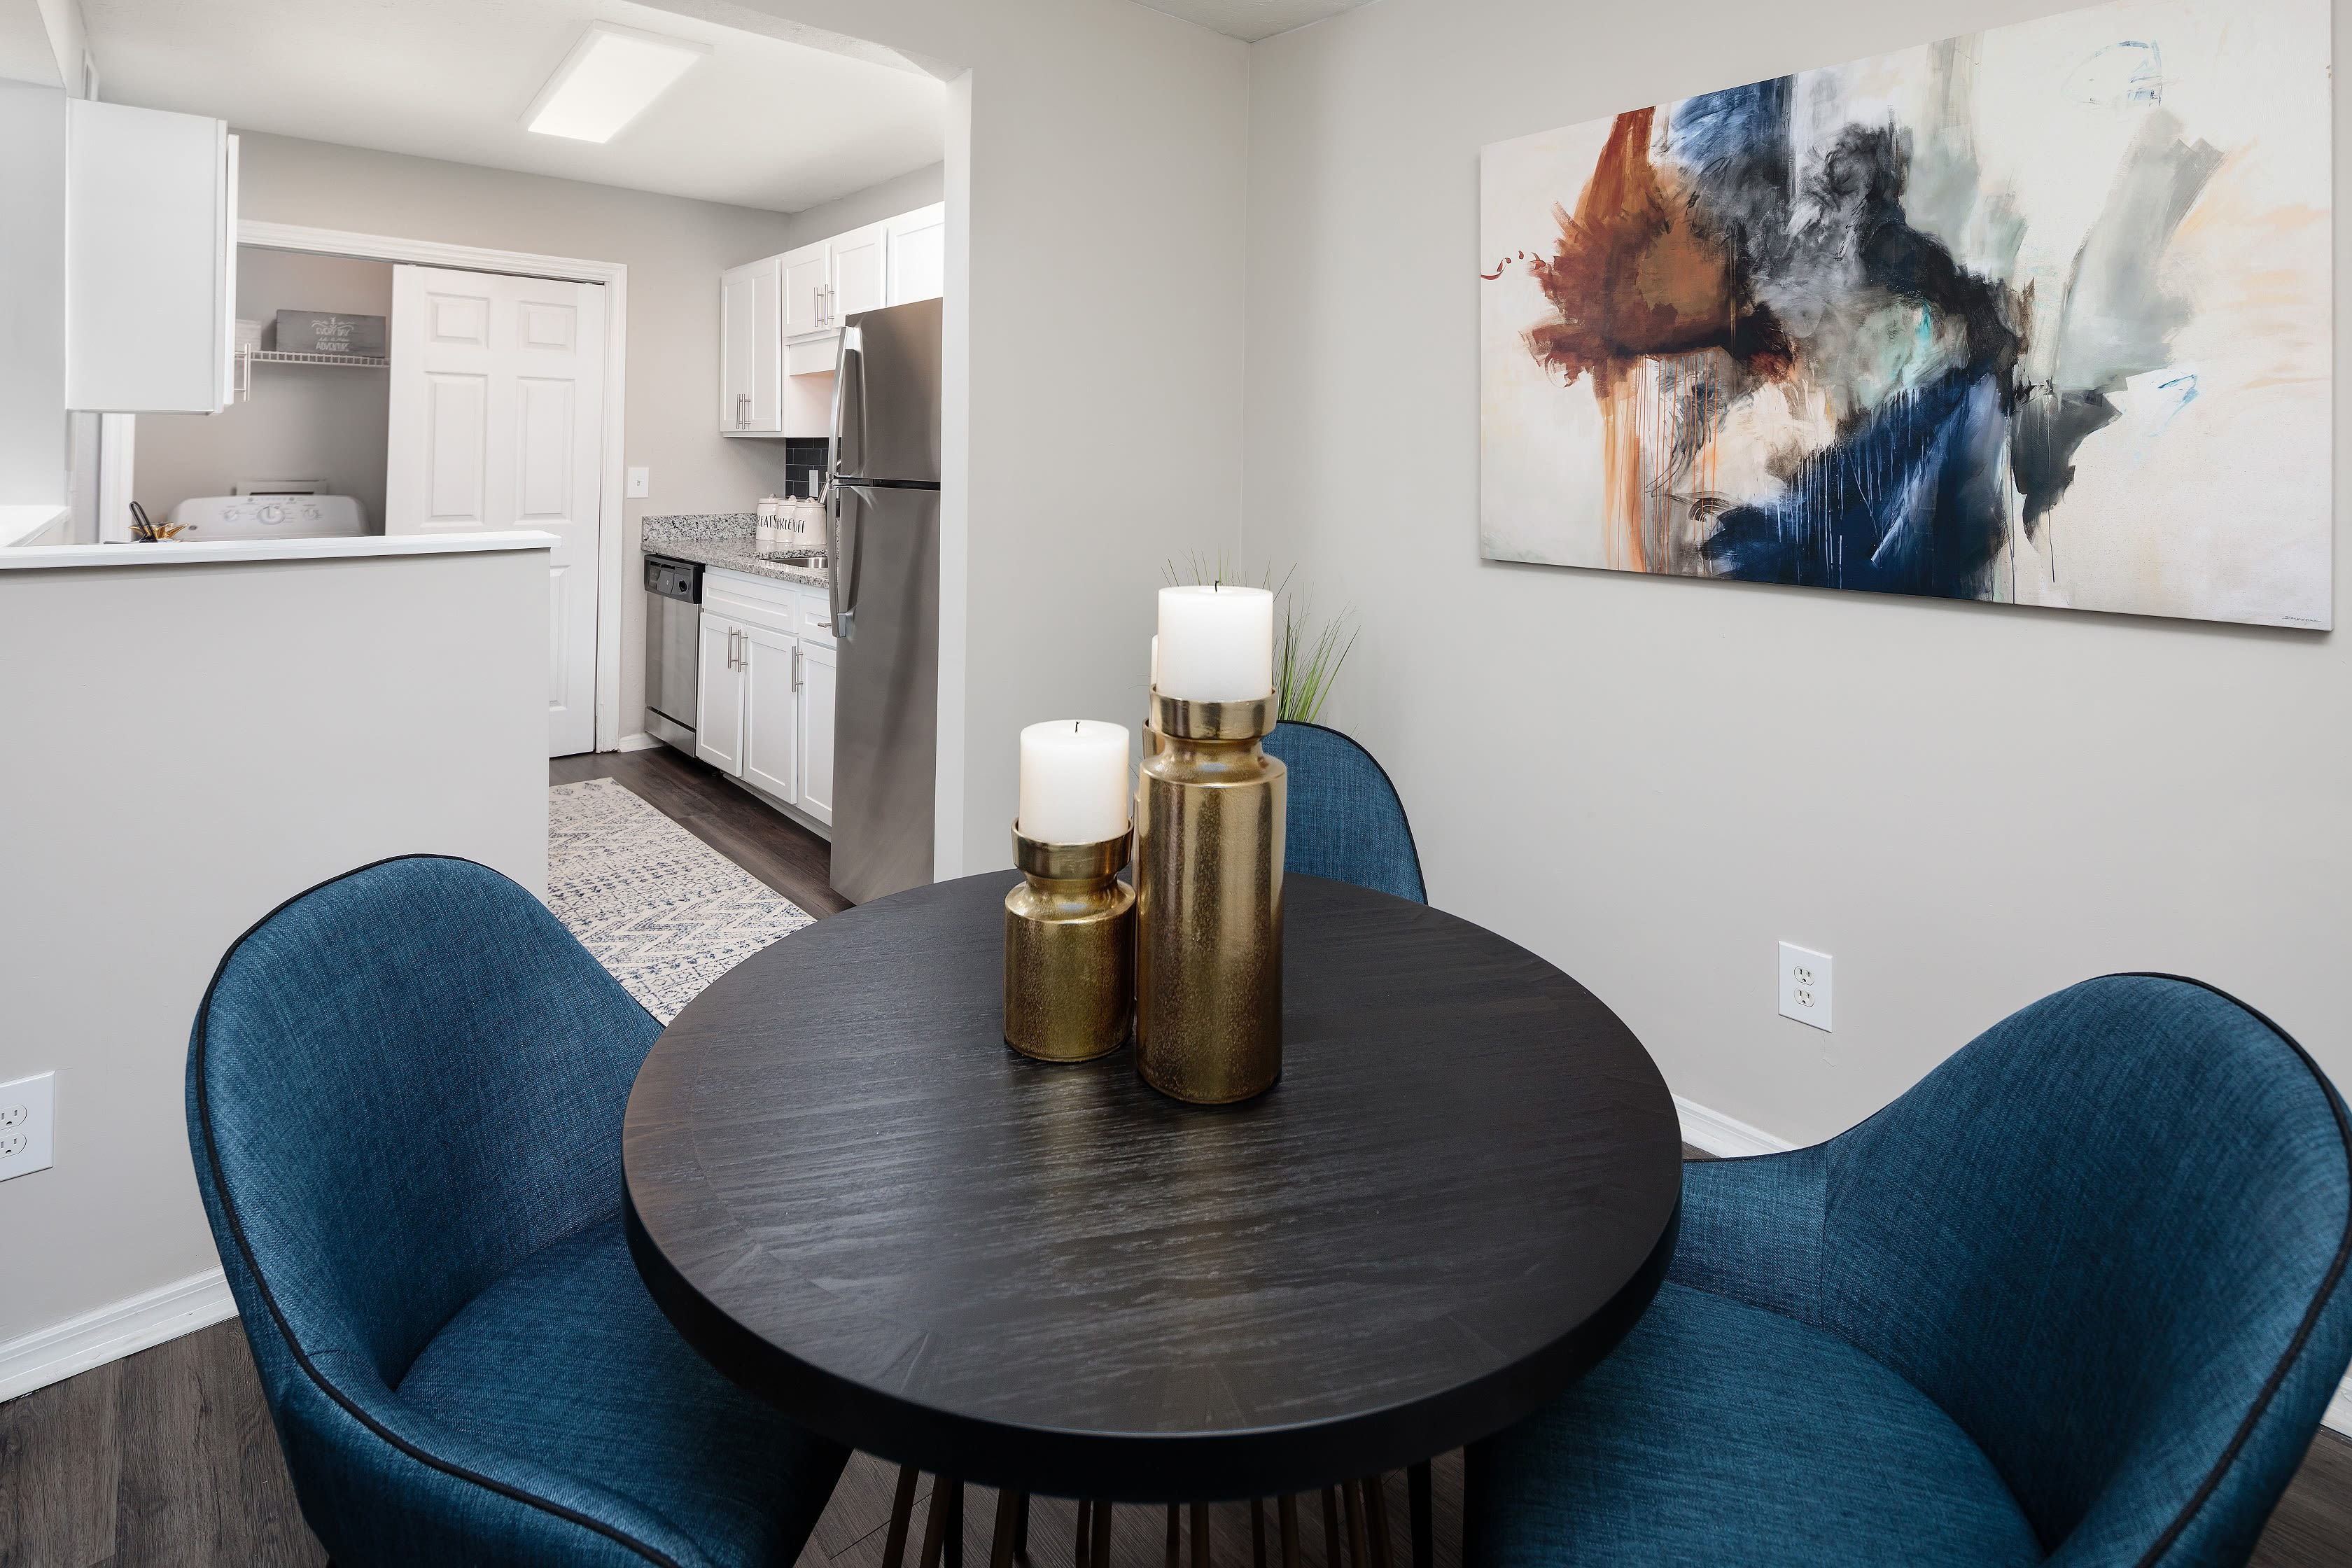 Stainless steel appliances and separate dining rooms at The Bentley at Marietta in Marietta, GA